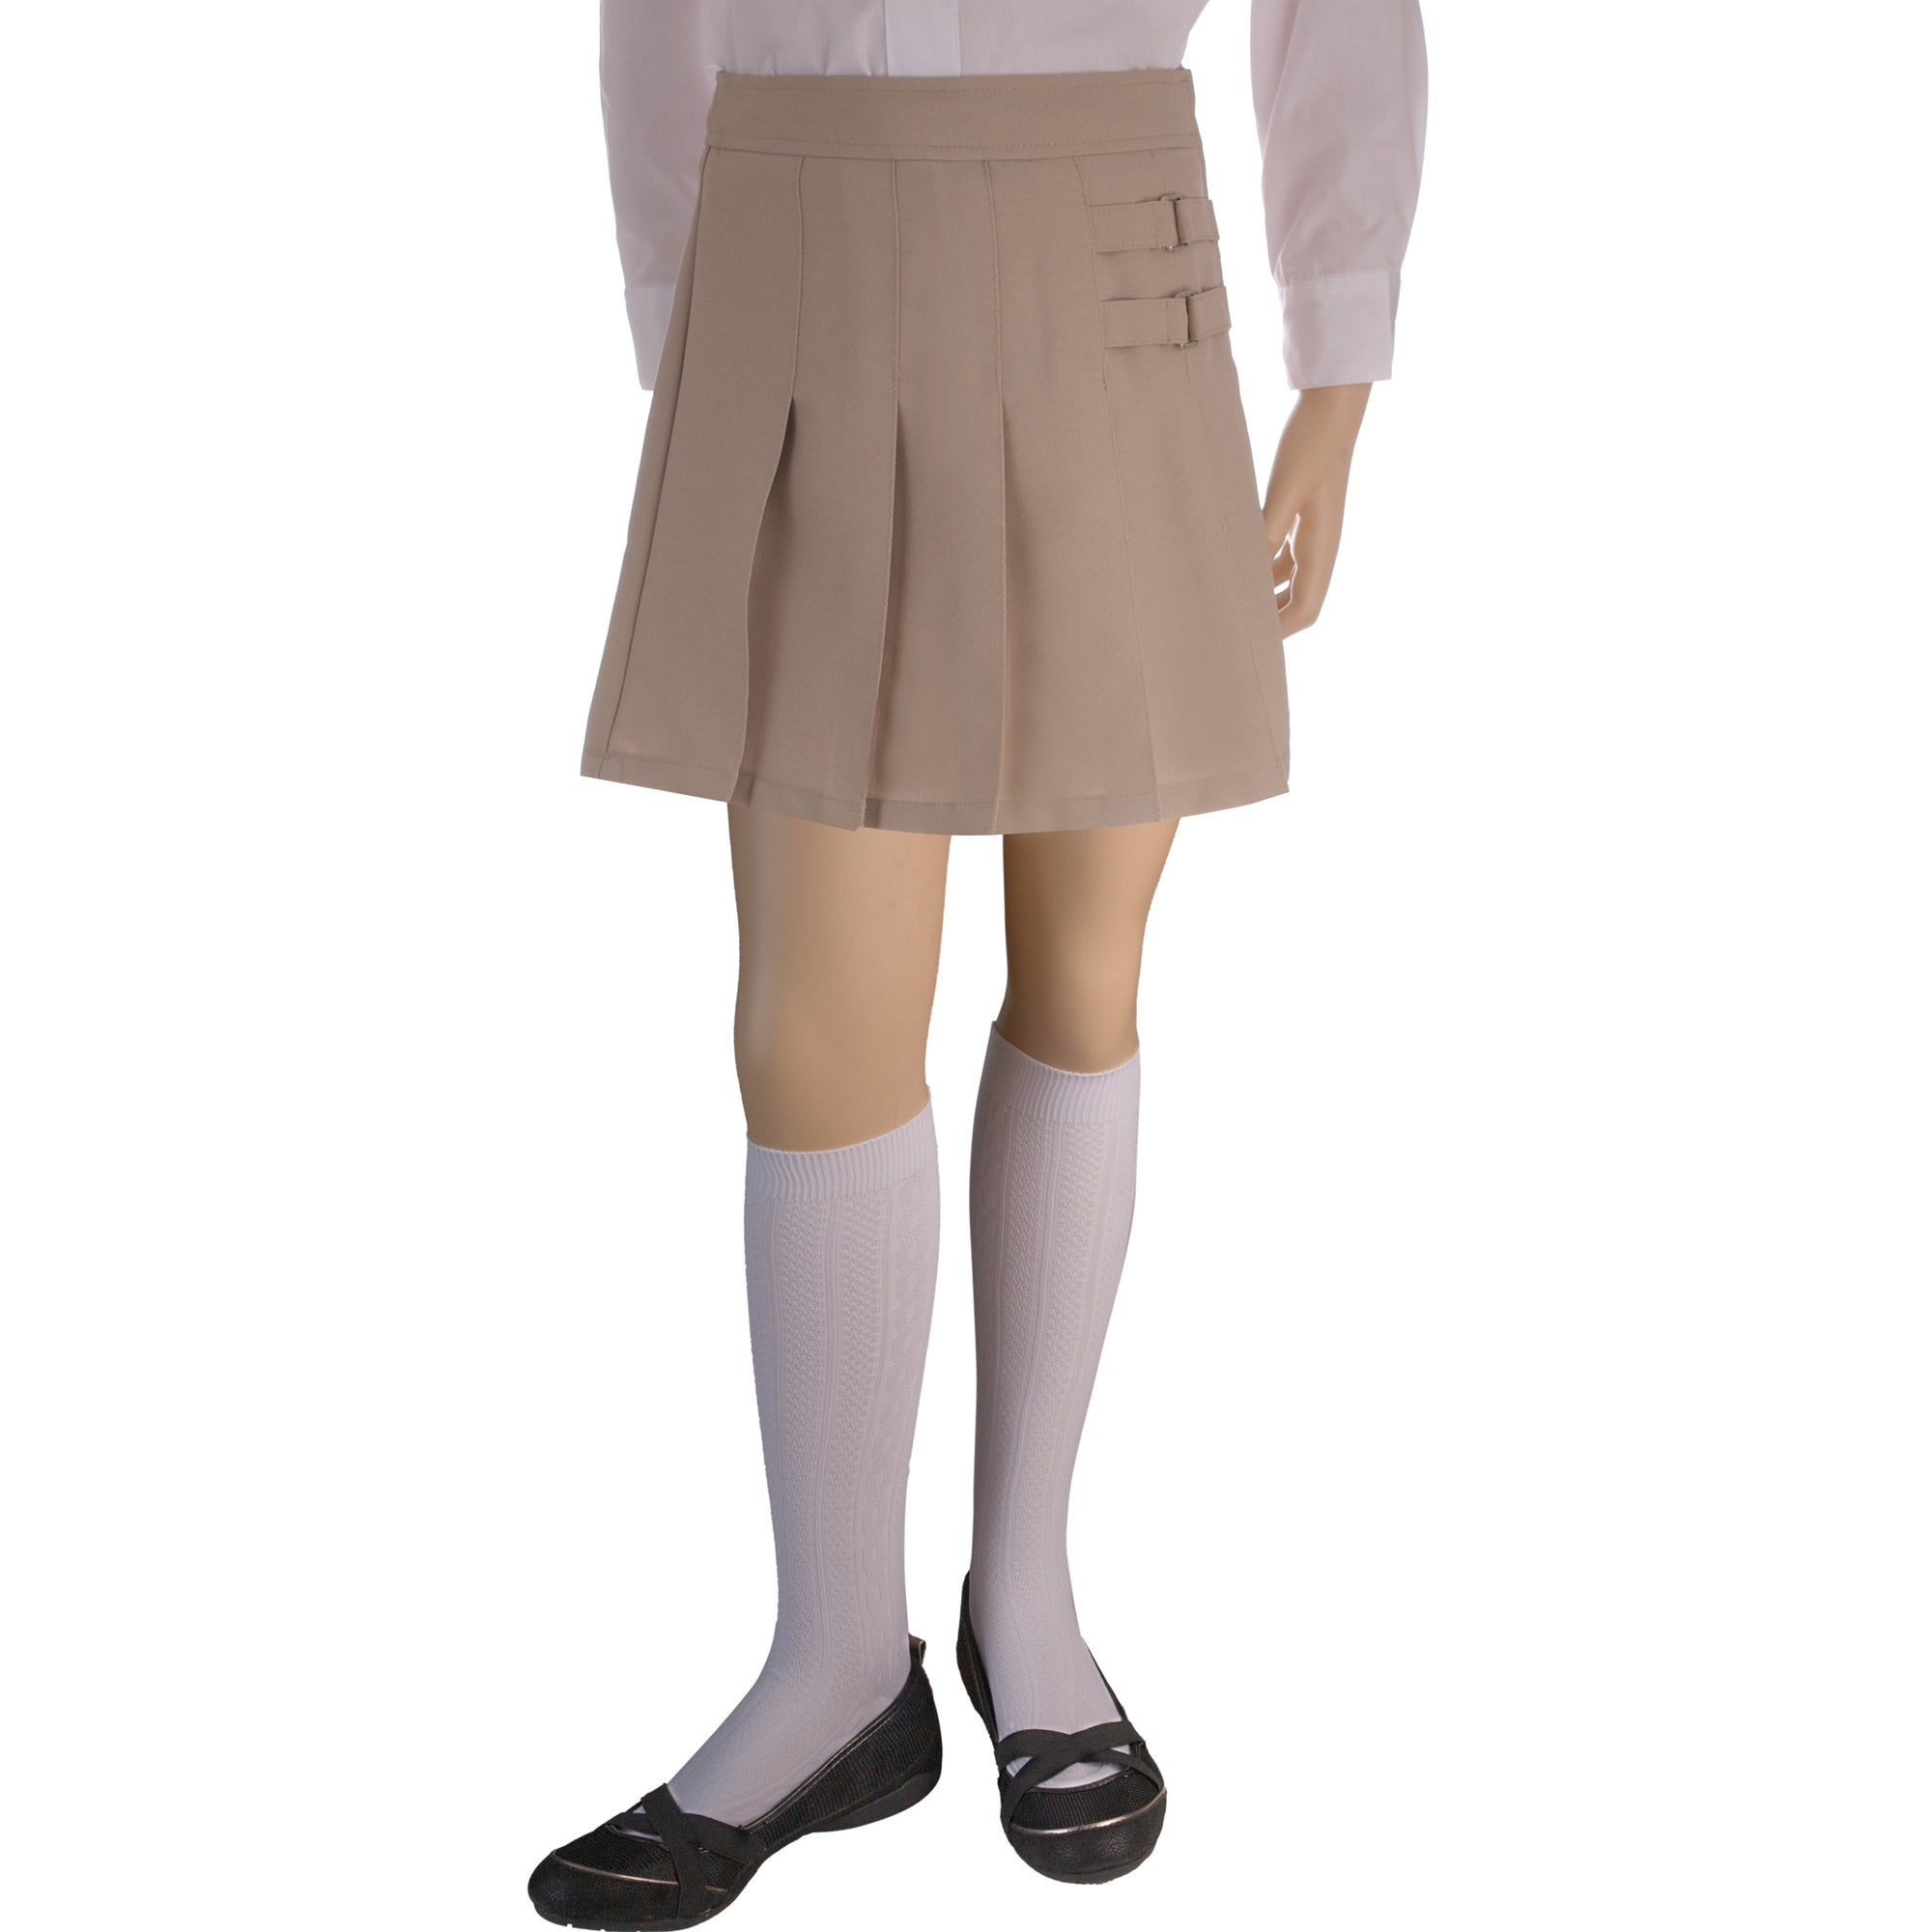 c450e2545 Shop French Toast Girl's Scooter School Uniform Size 8 (Set of 2) - Free  Shipping On Orders Over $45 - Overstock - 7022523